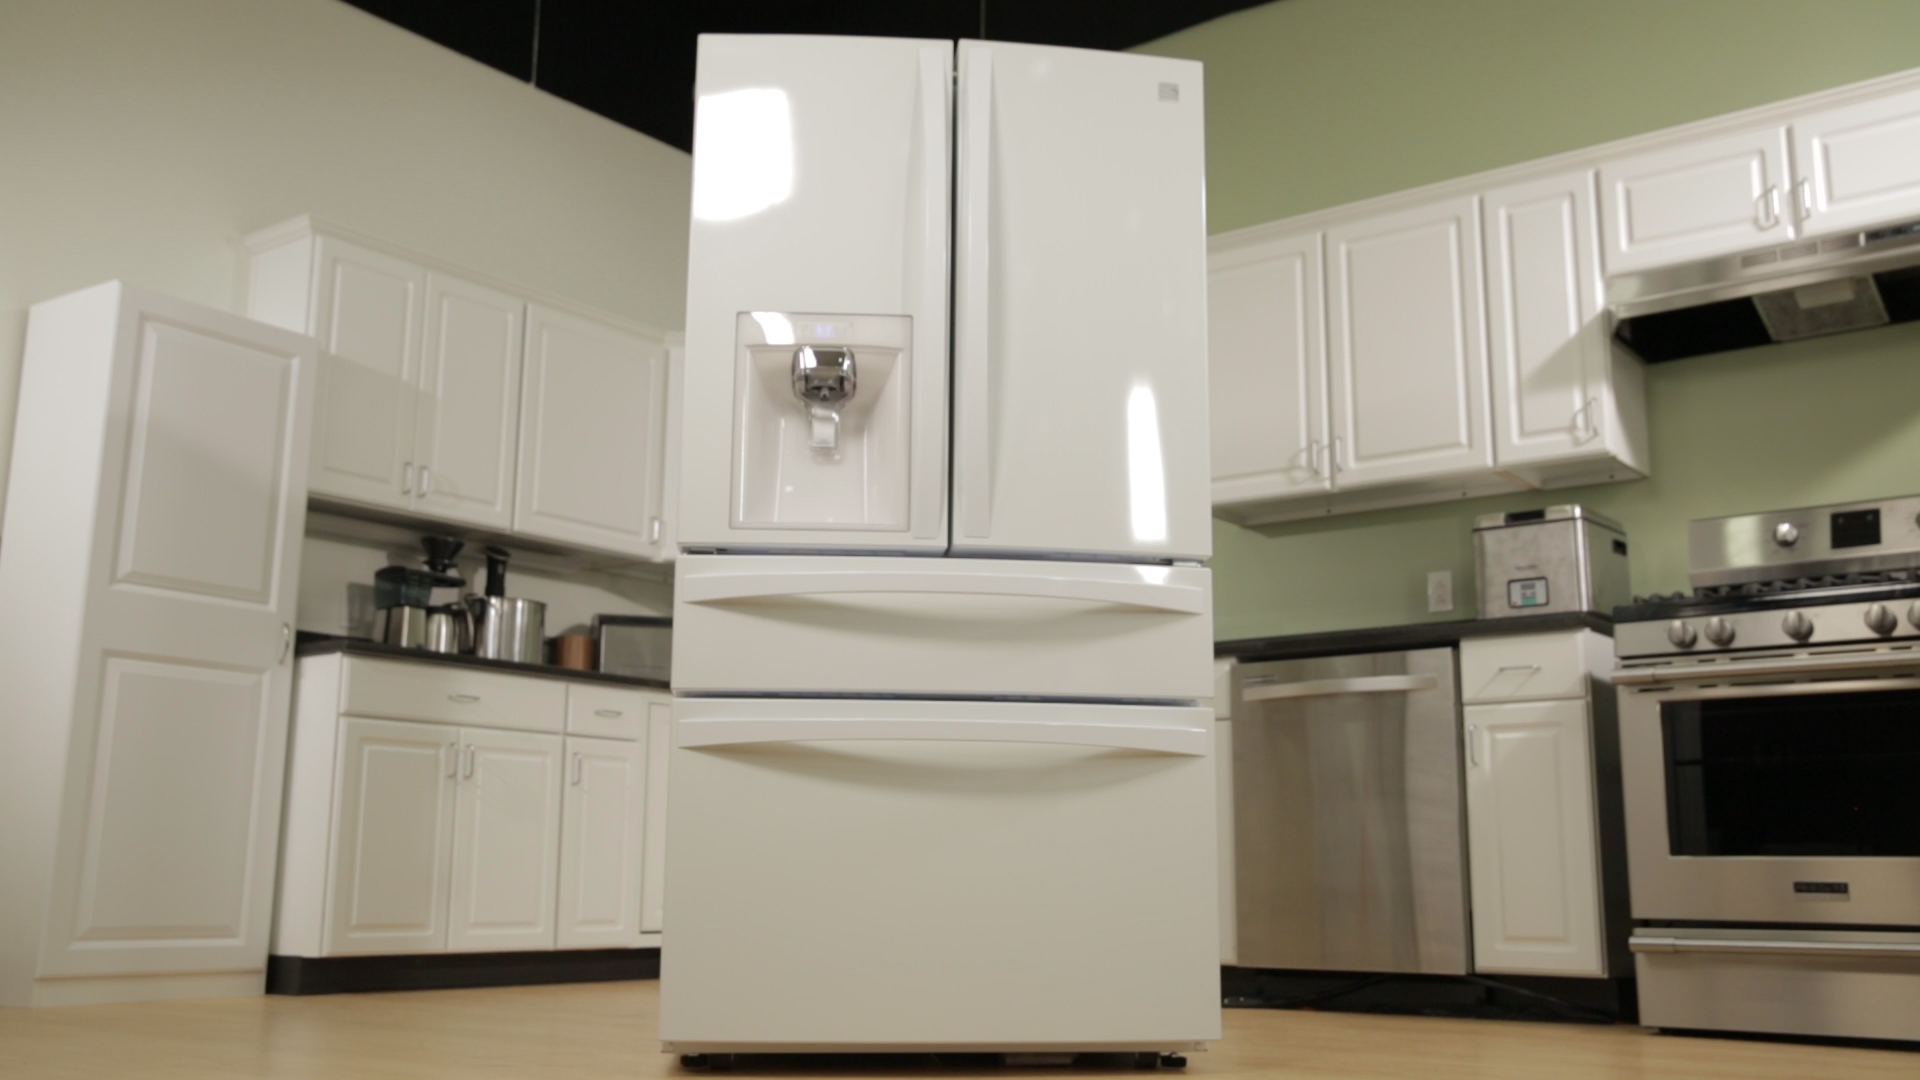 Video: This Kenmore French door fridge wins CNET's Editors' Choice